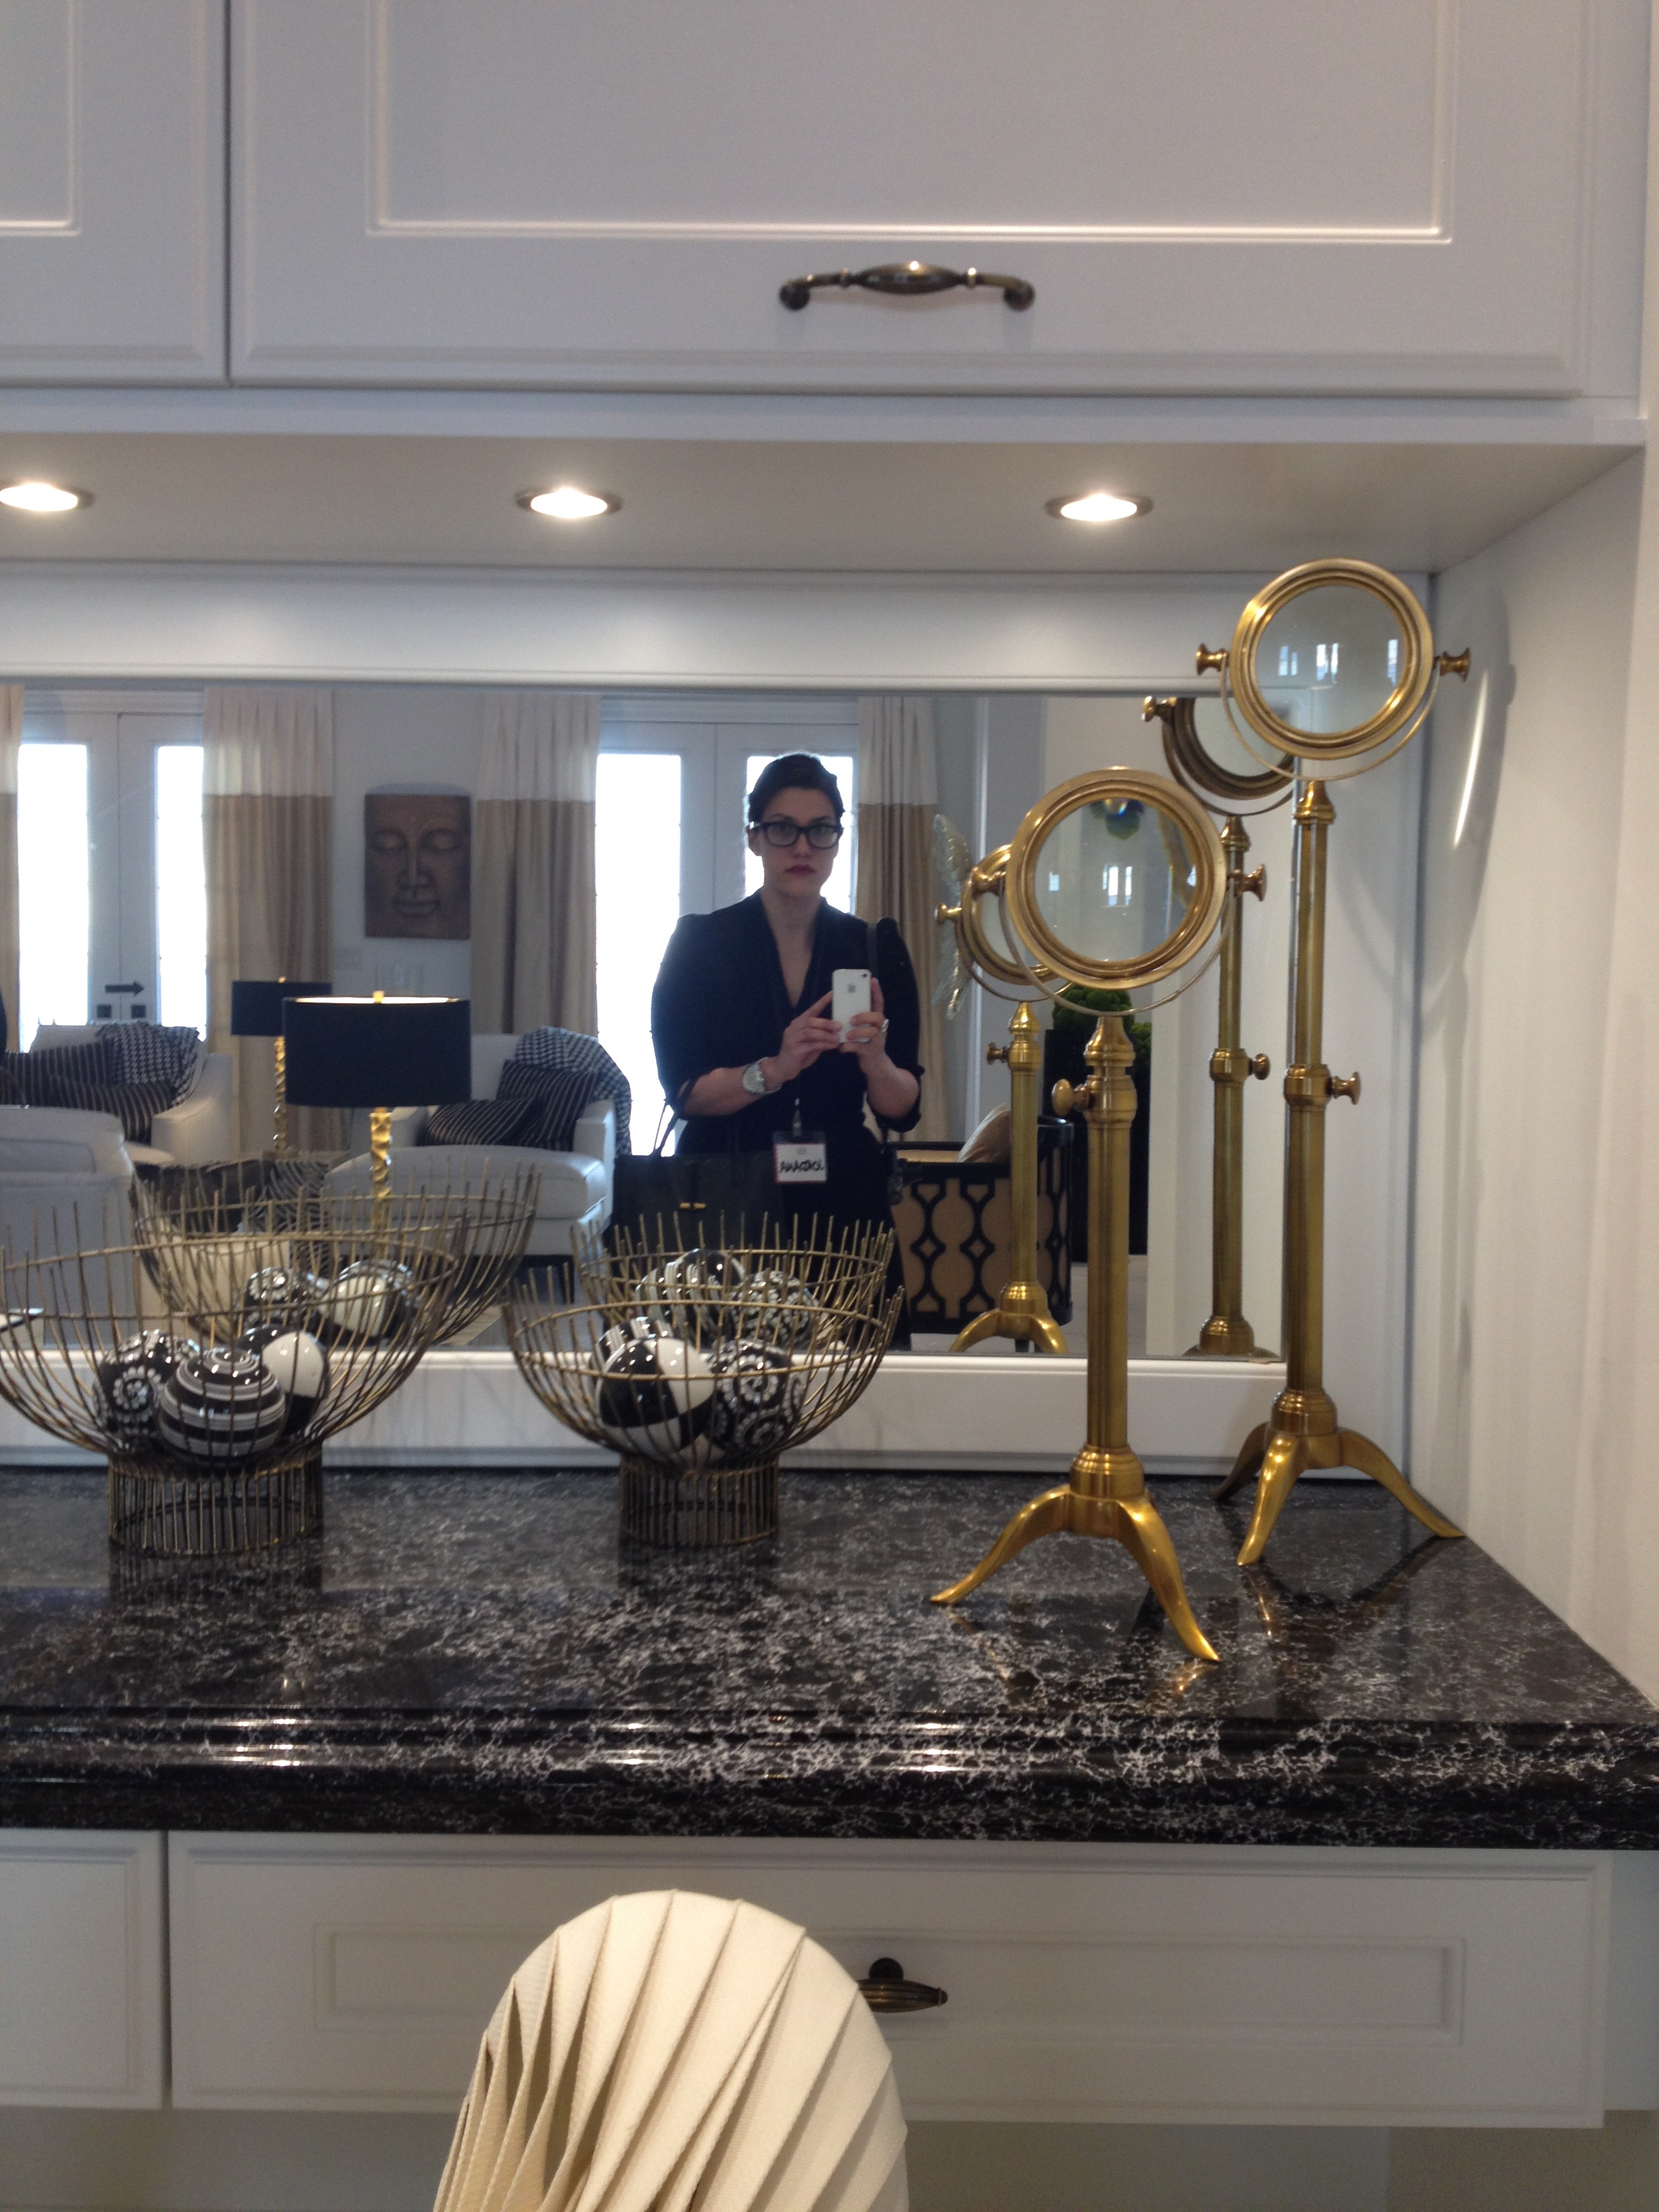 Design Mirrors in the Princess Margaret Home Lottery